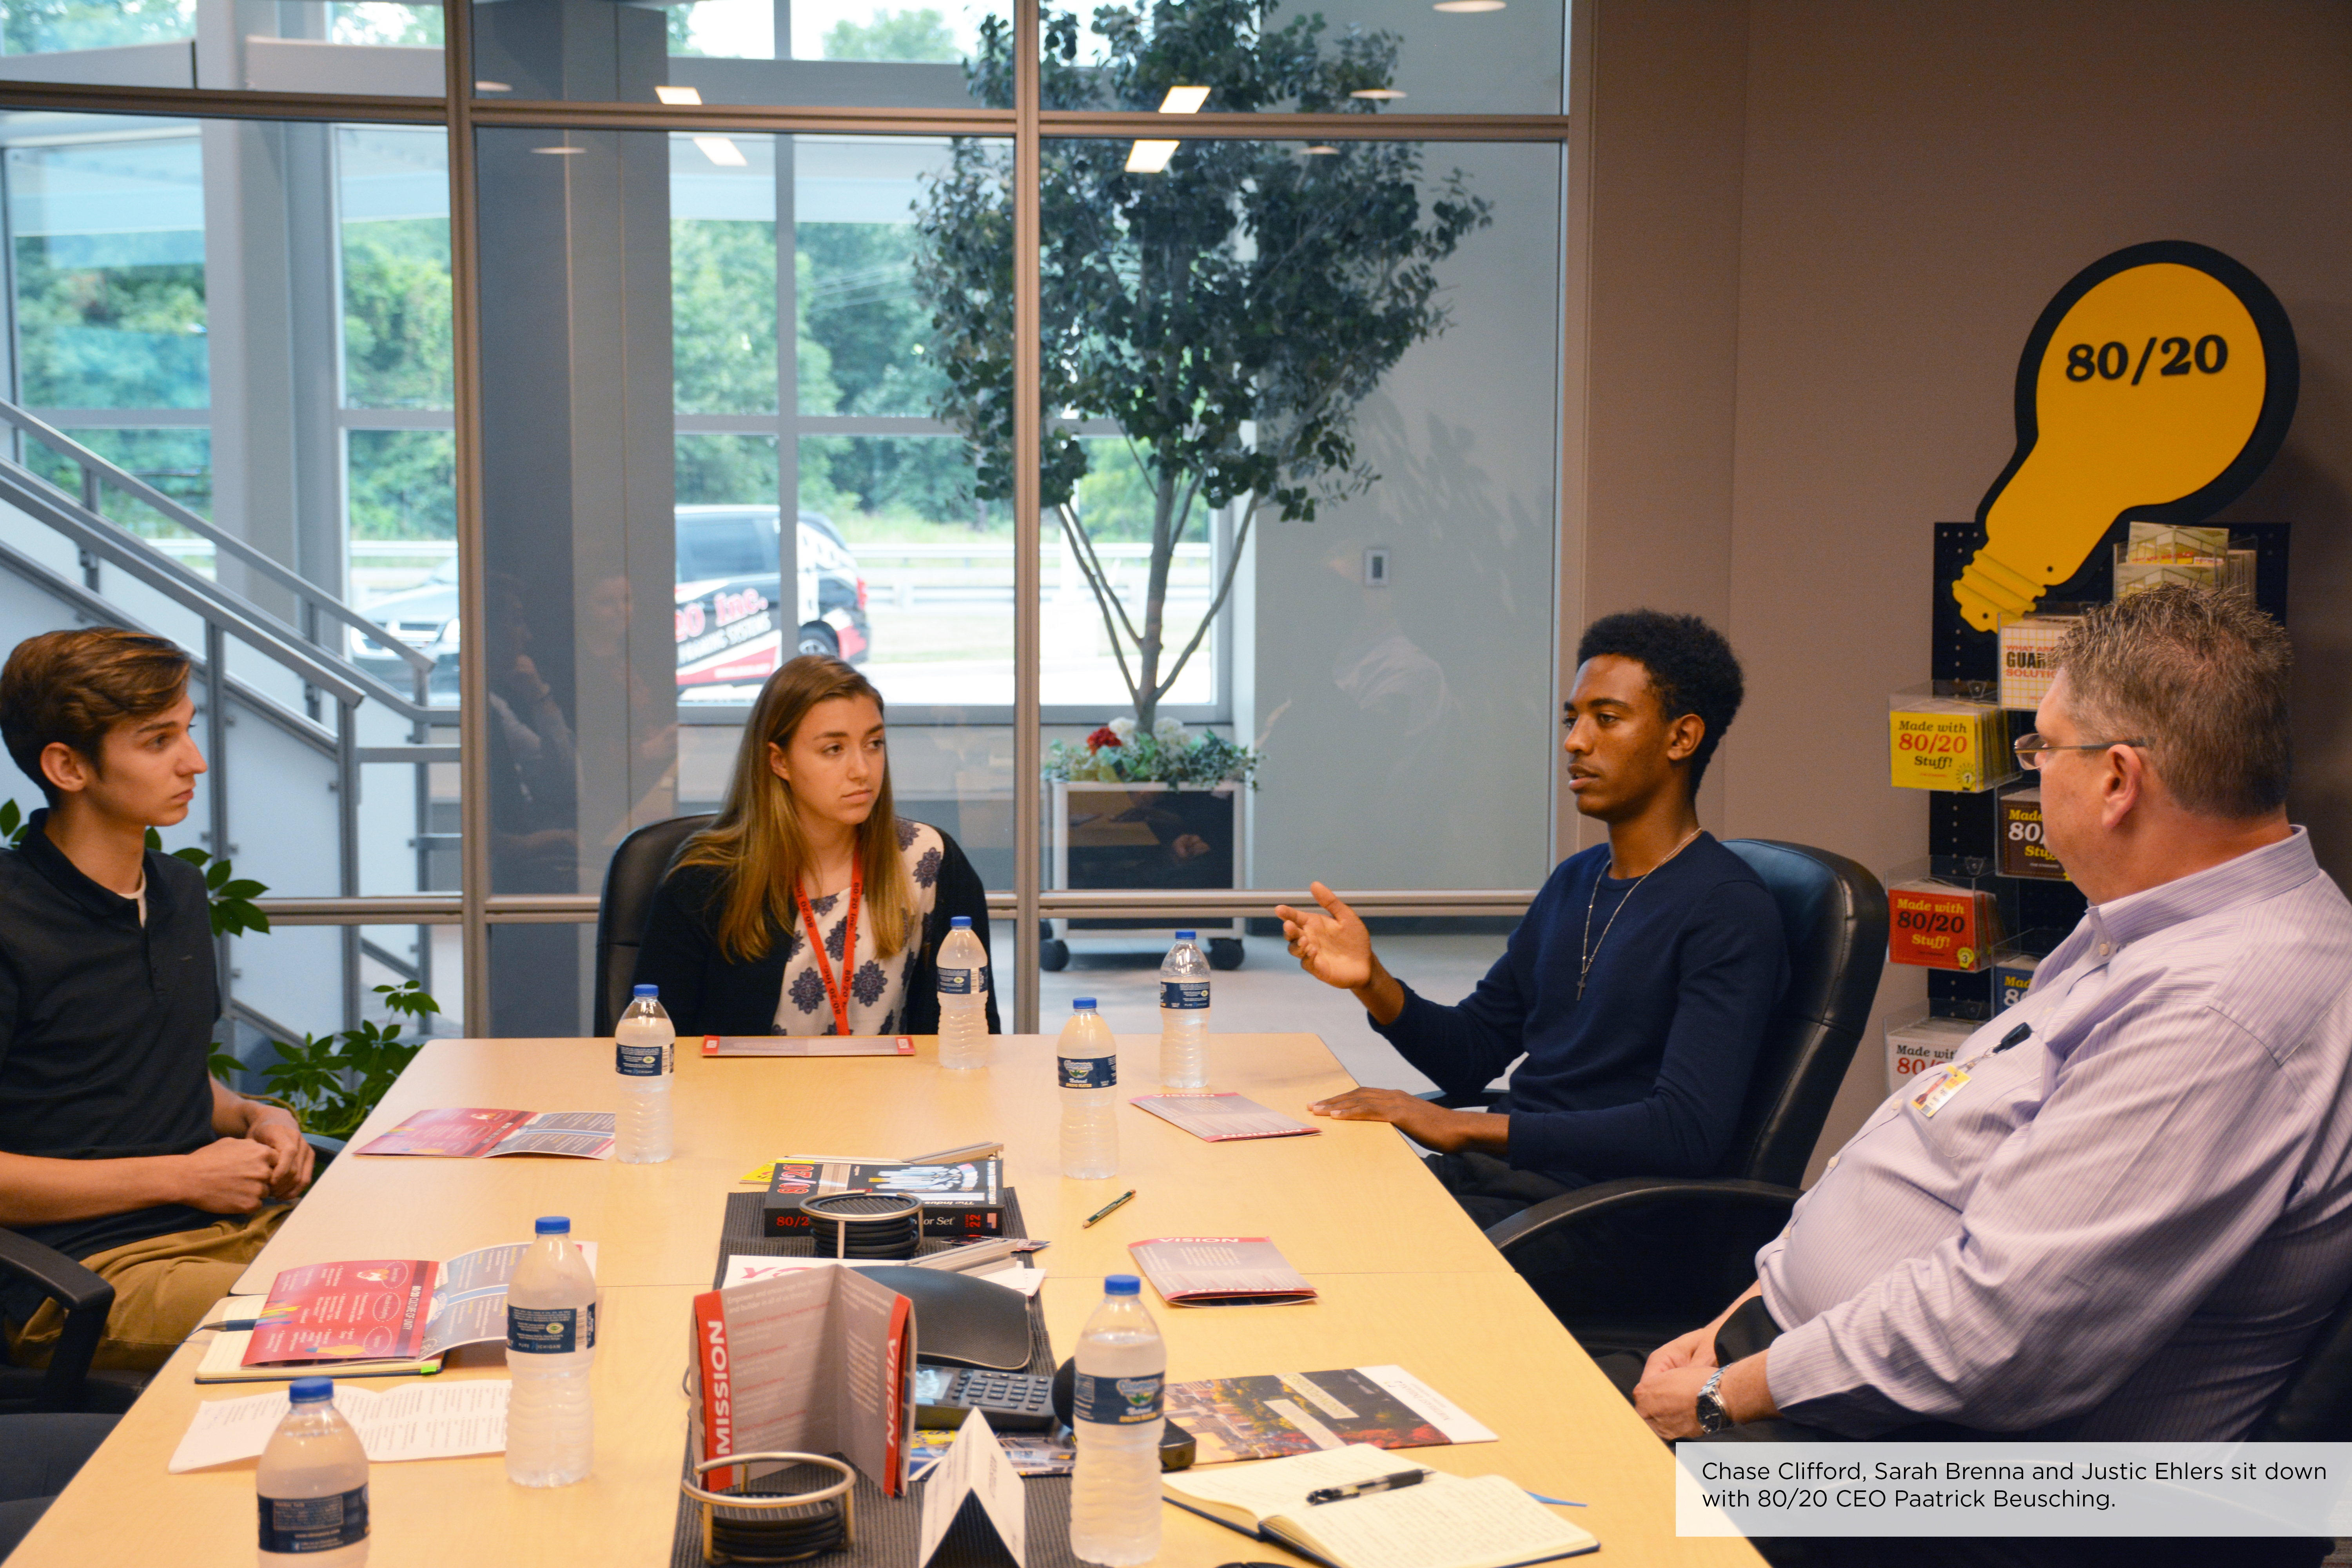 80/20 Interns discuss the strong support system at their internship.